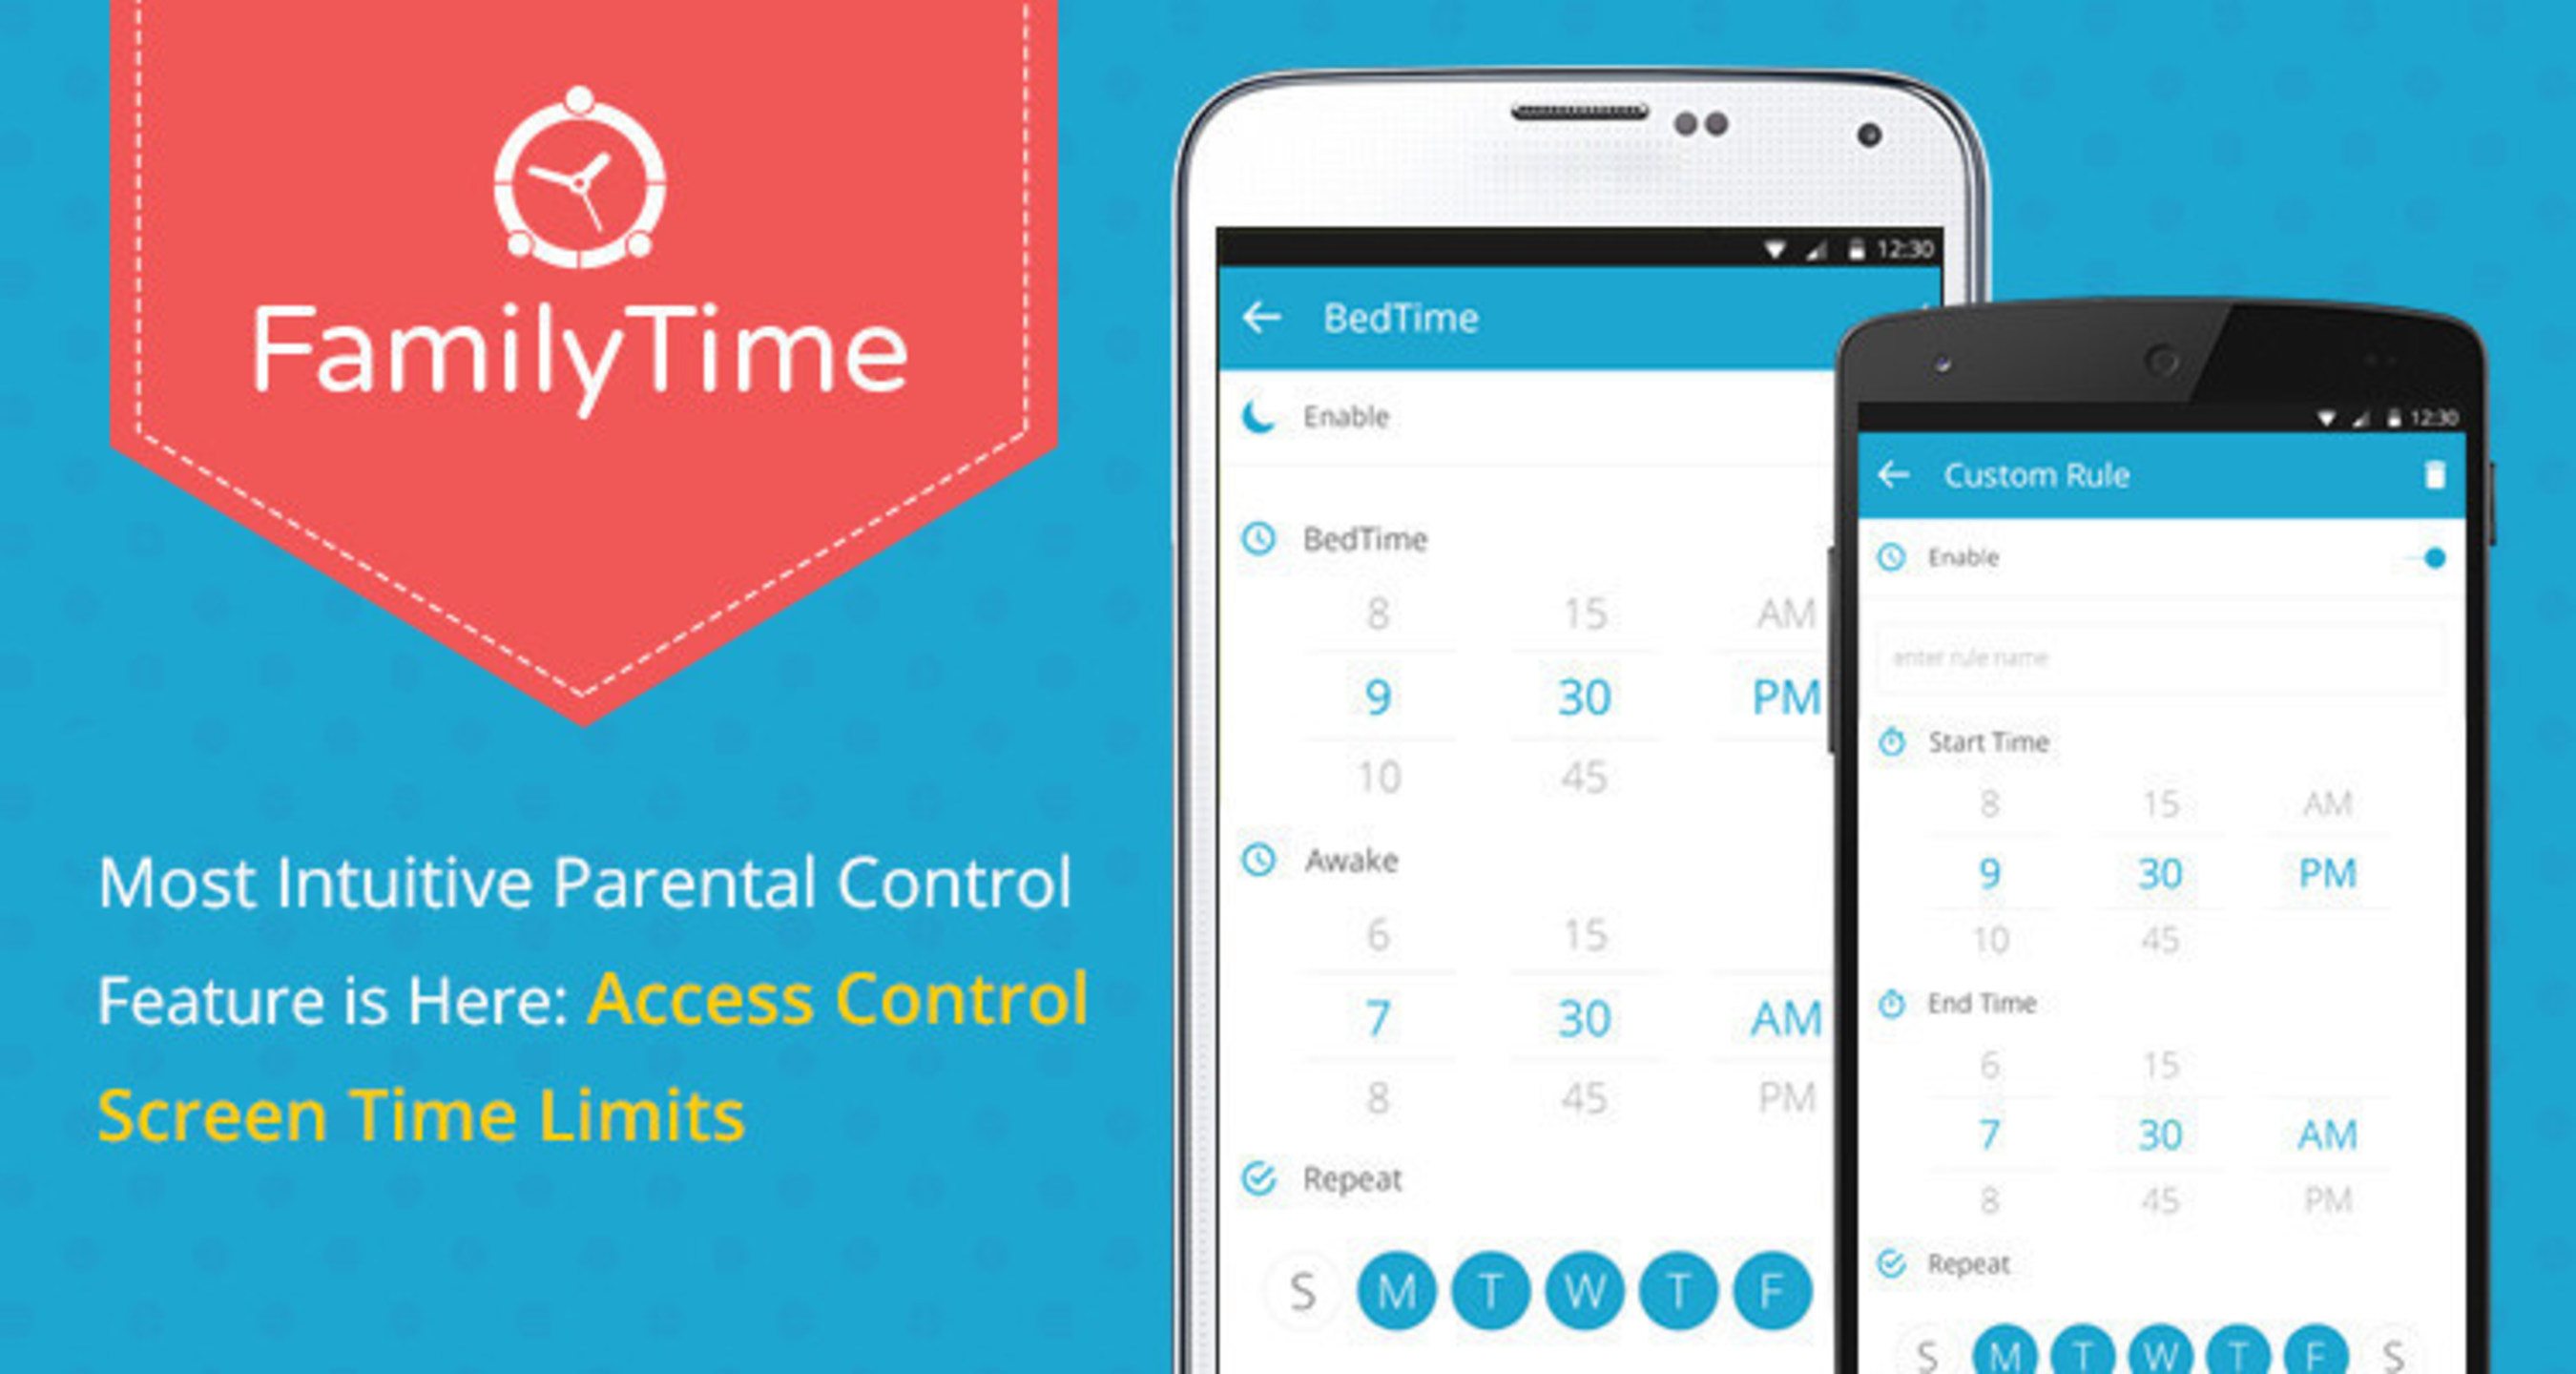 Promising Parental Control App FamilyTime Kick-starts New Year with New Features, Goes Multilingual